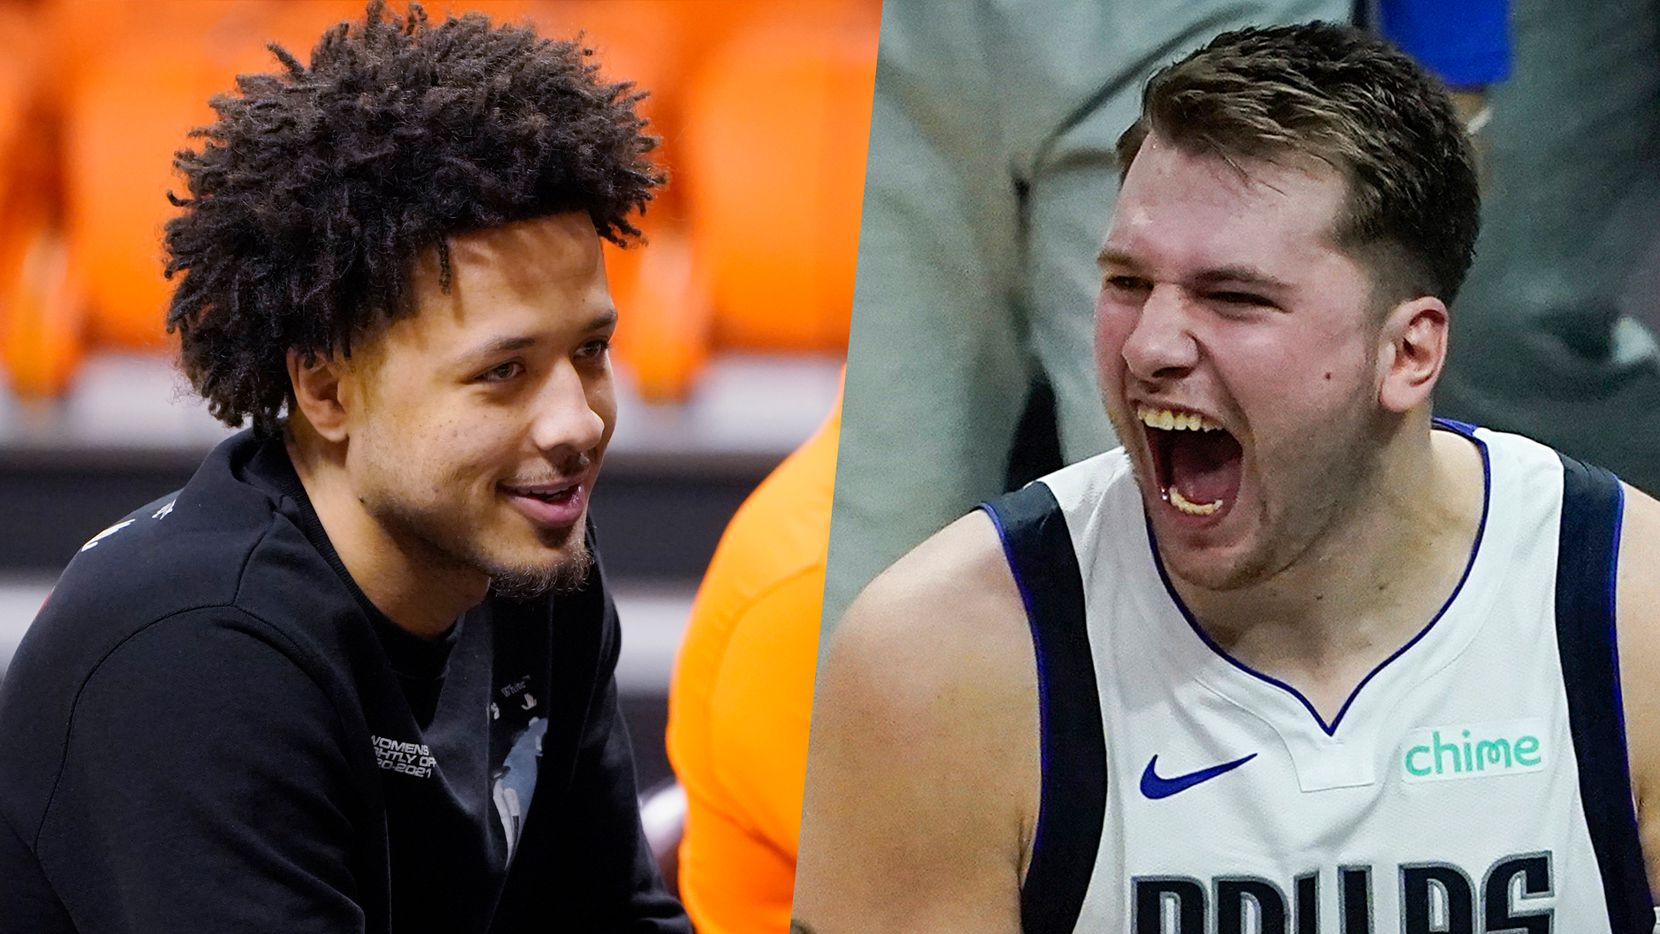 Cade Cunningham (left) and Luka Doncic.